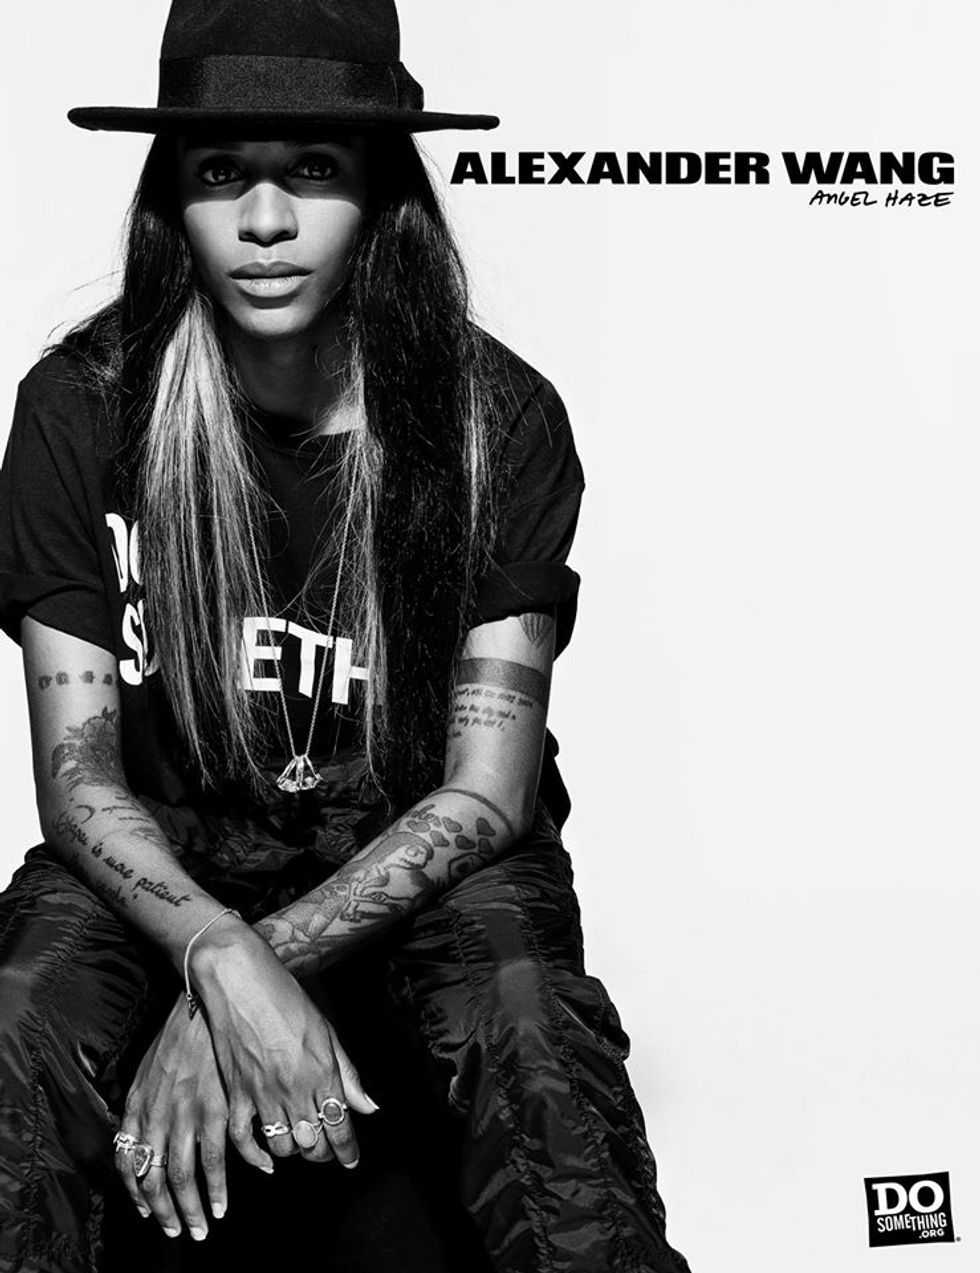 Kim, Kanye, Grimes + More Star in Alexander Wang's New Campaign